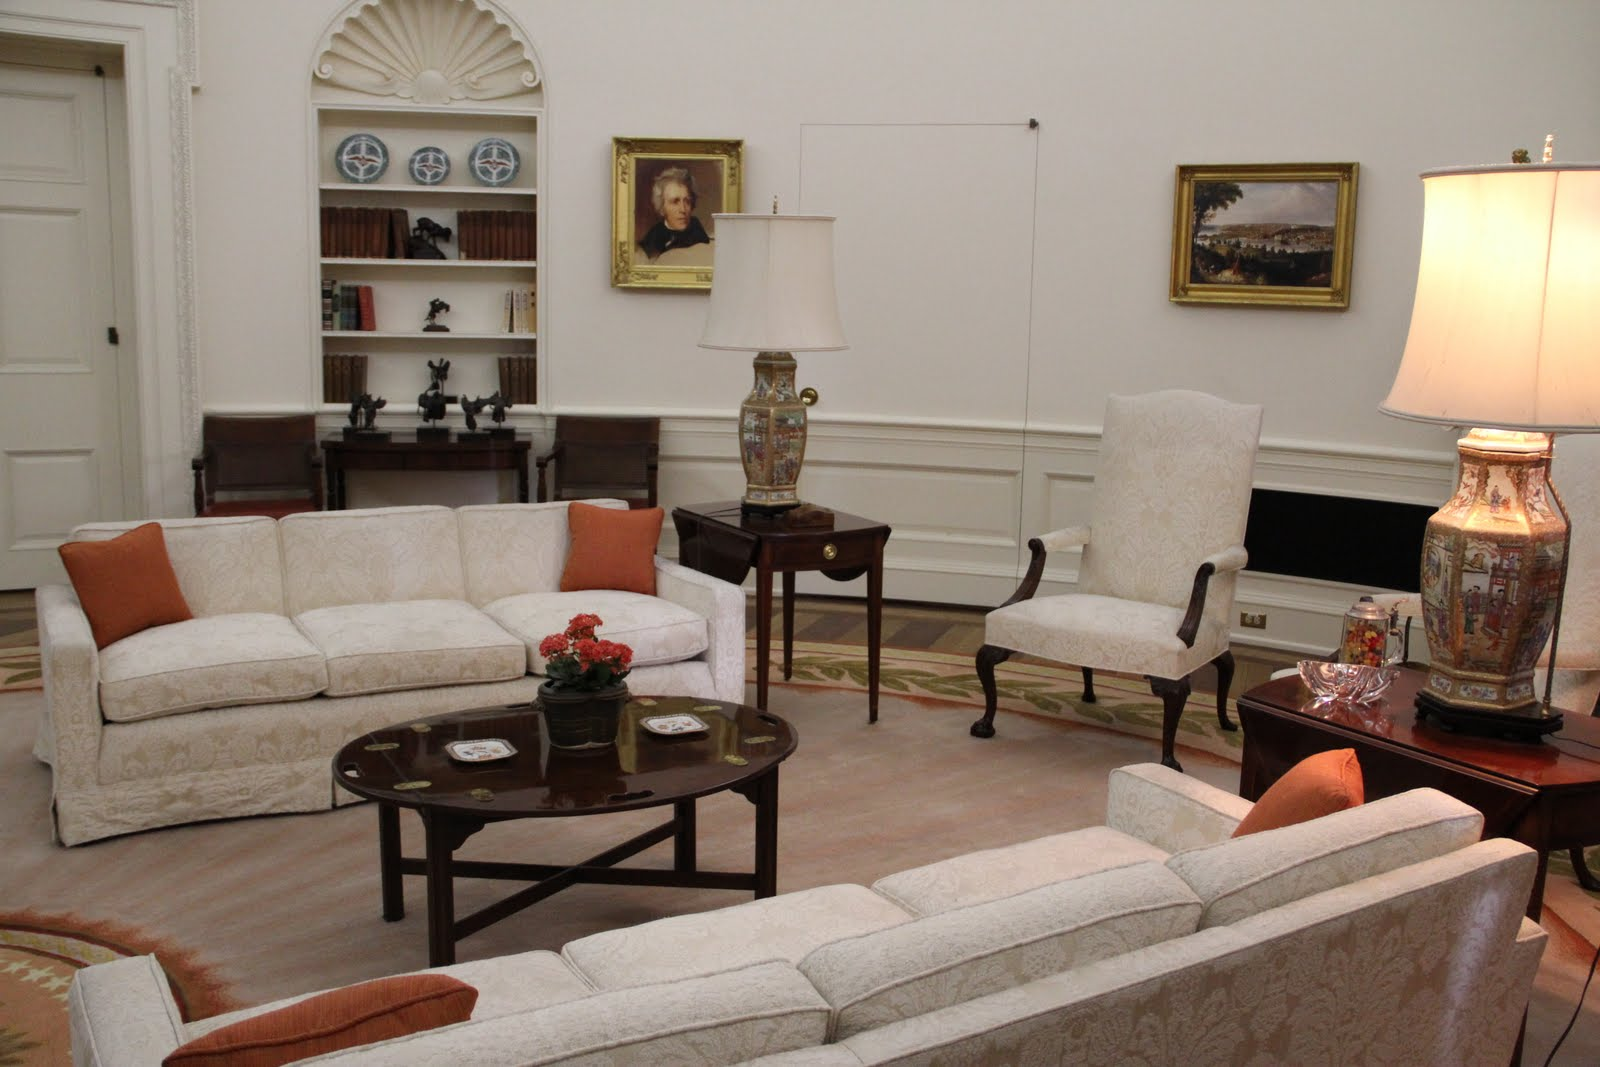 ronald reagan oval office. THIS Is A Replica Of His OVAL OFFICE, Everything In Here Was Office, Except For The Resolute Desk, That Still Oval Office. Ronald Reagan Office O